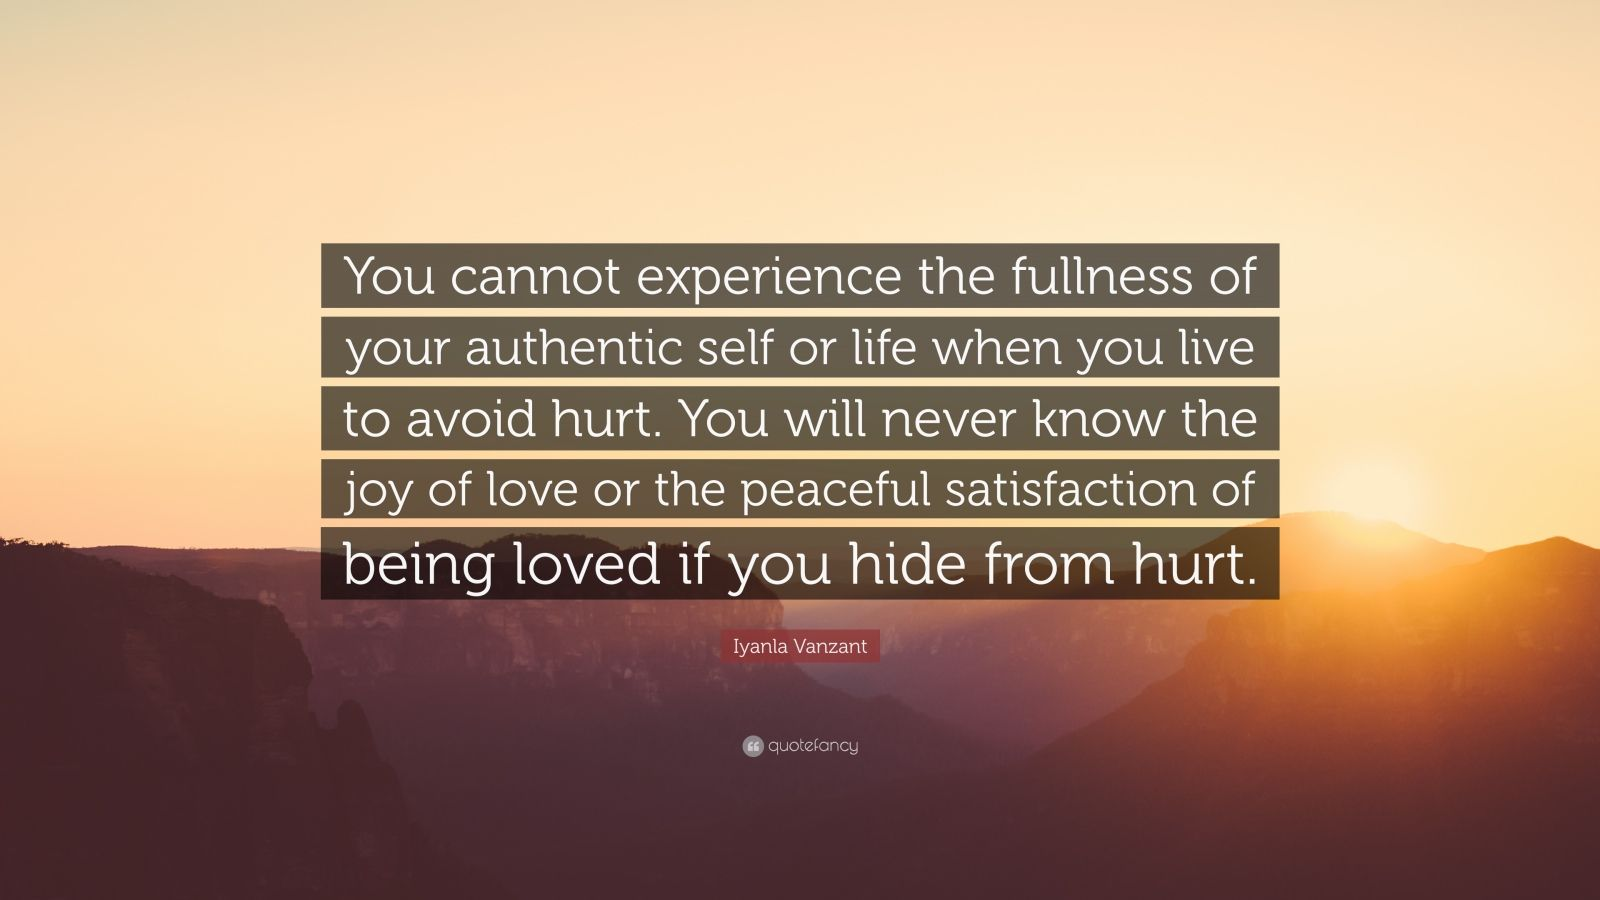 """Iyanla Vanzant Quote: """"You cannot experience the fullness of your authentic self or life when you live to avoid hurt. You will never know the joy of love or the peaceful satisfaction of being loved if you hide from hurt."""""""